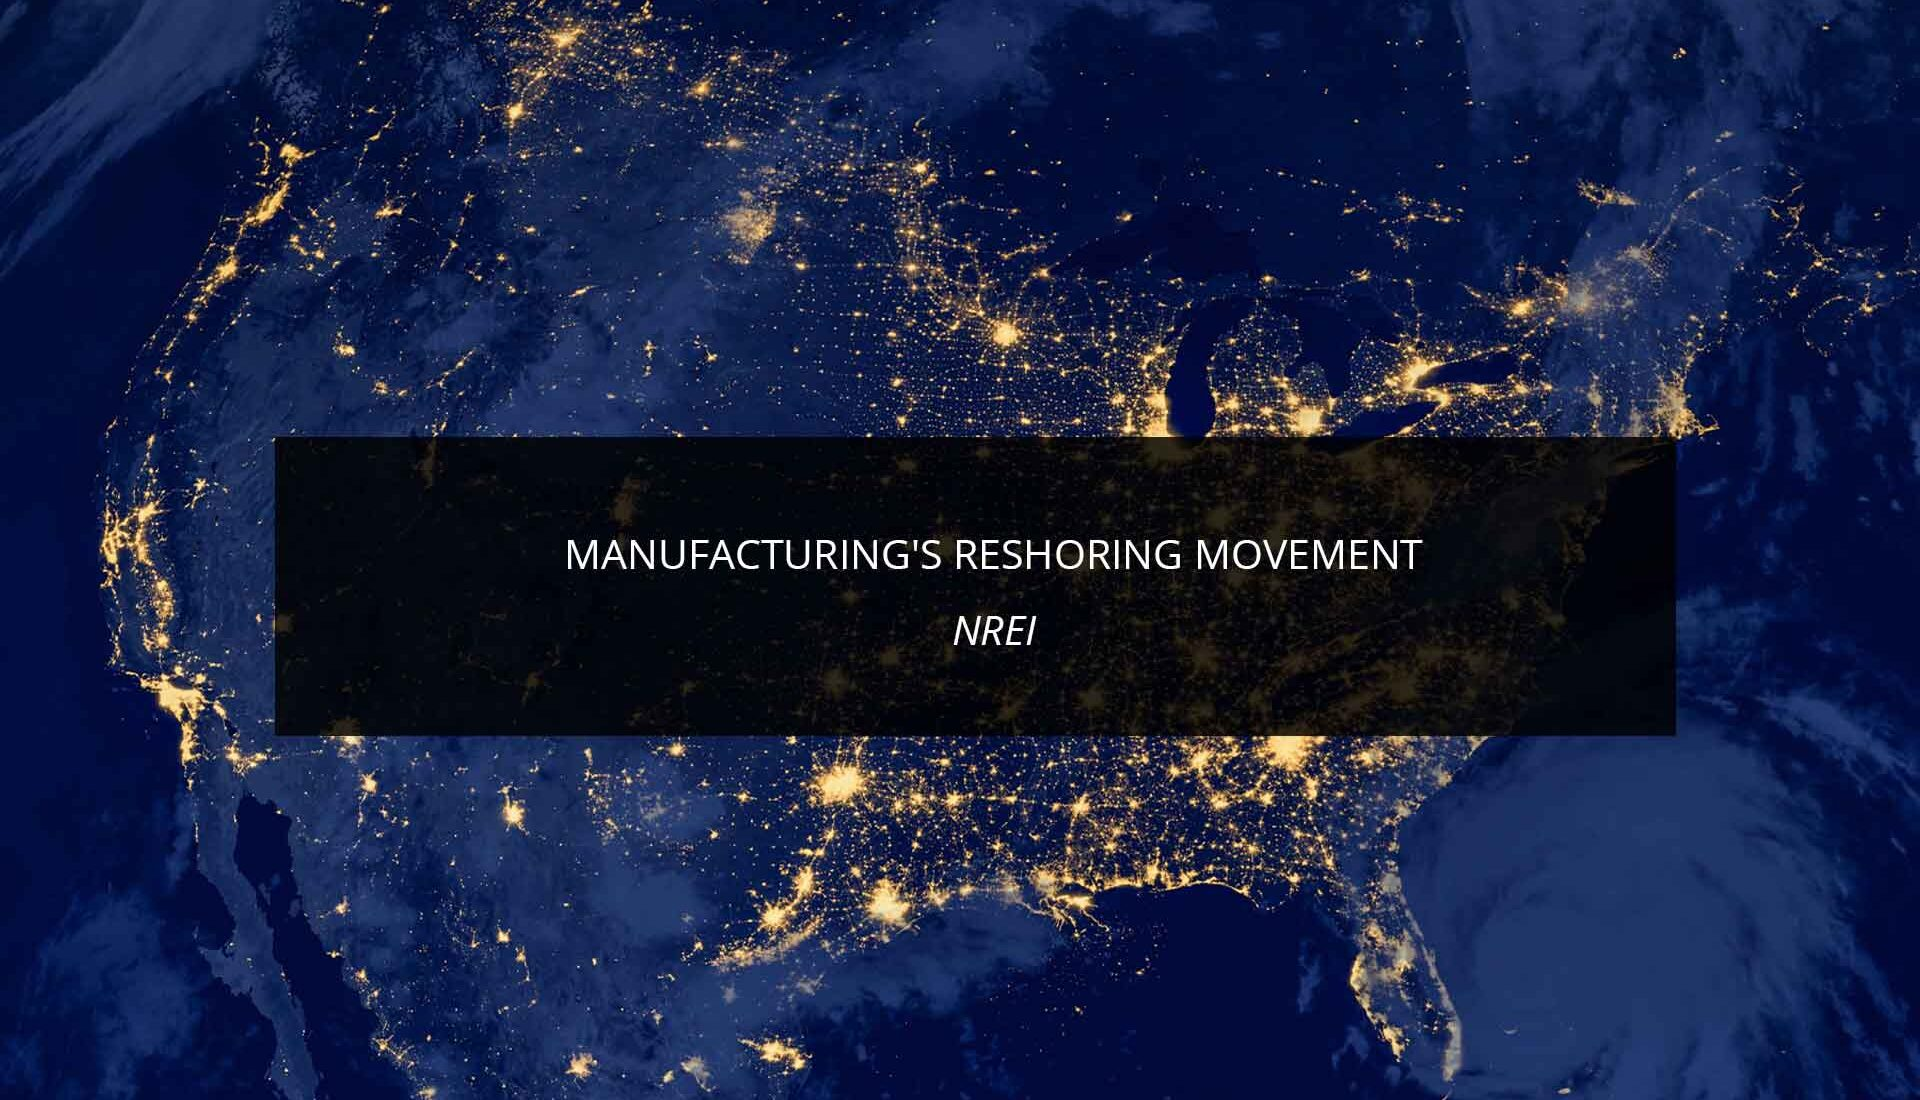 Manufacturing's Reshoring Movement